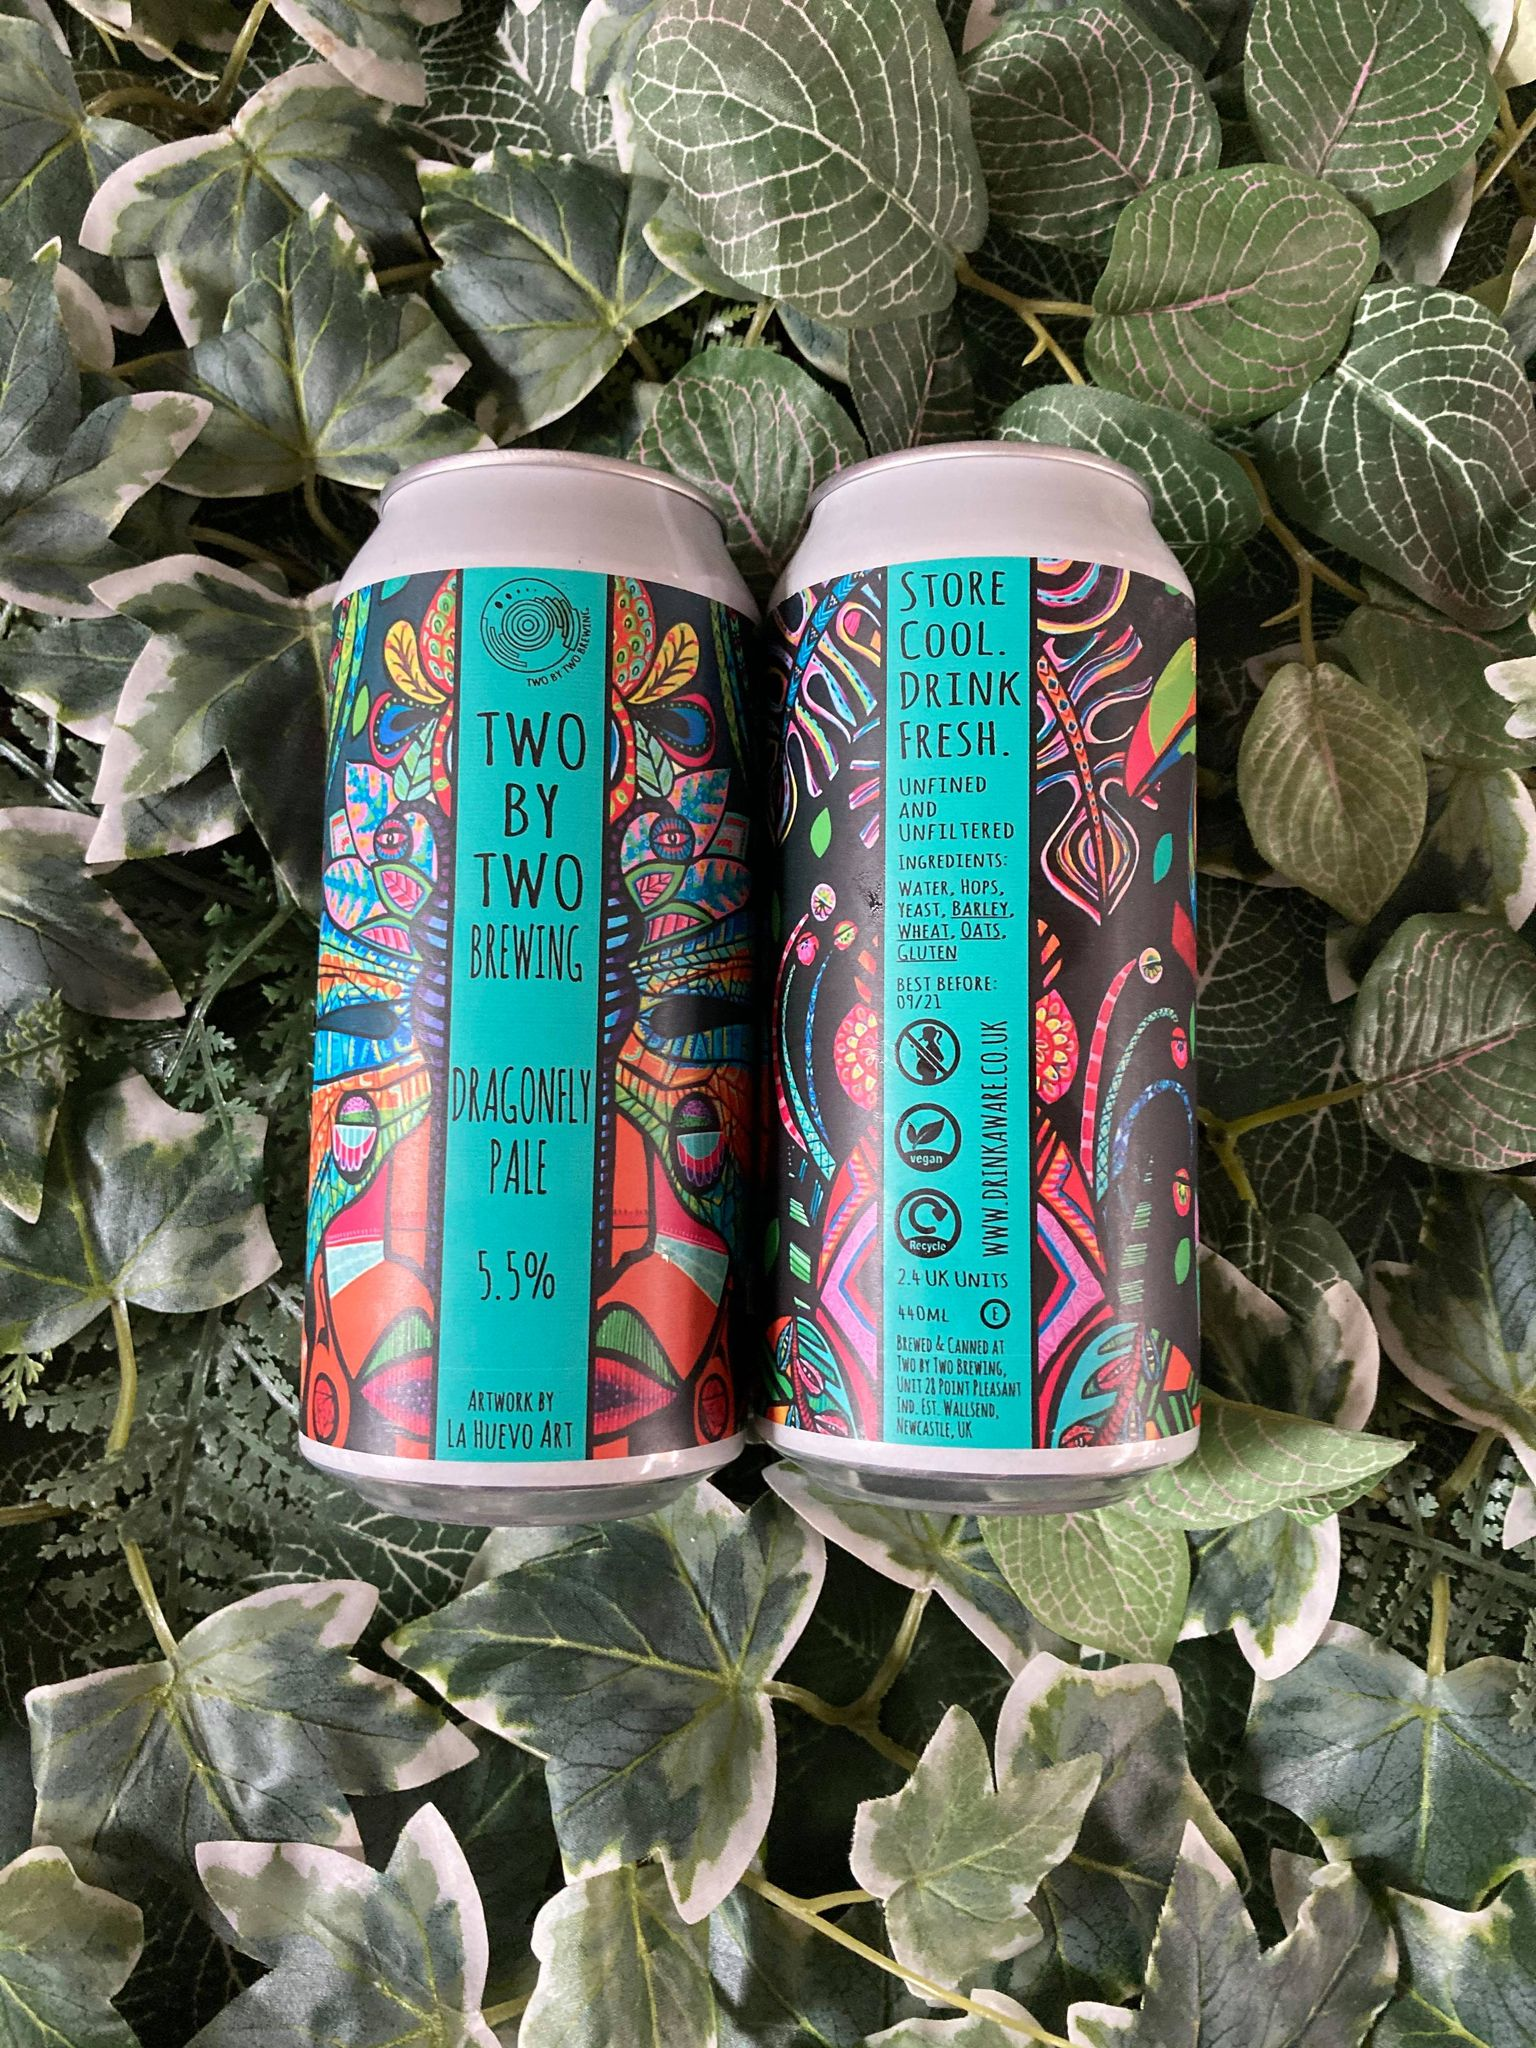 Two By Two - Dragonfly Pale 5.5%